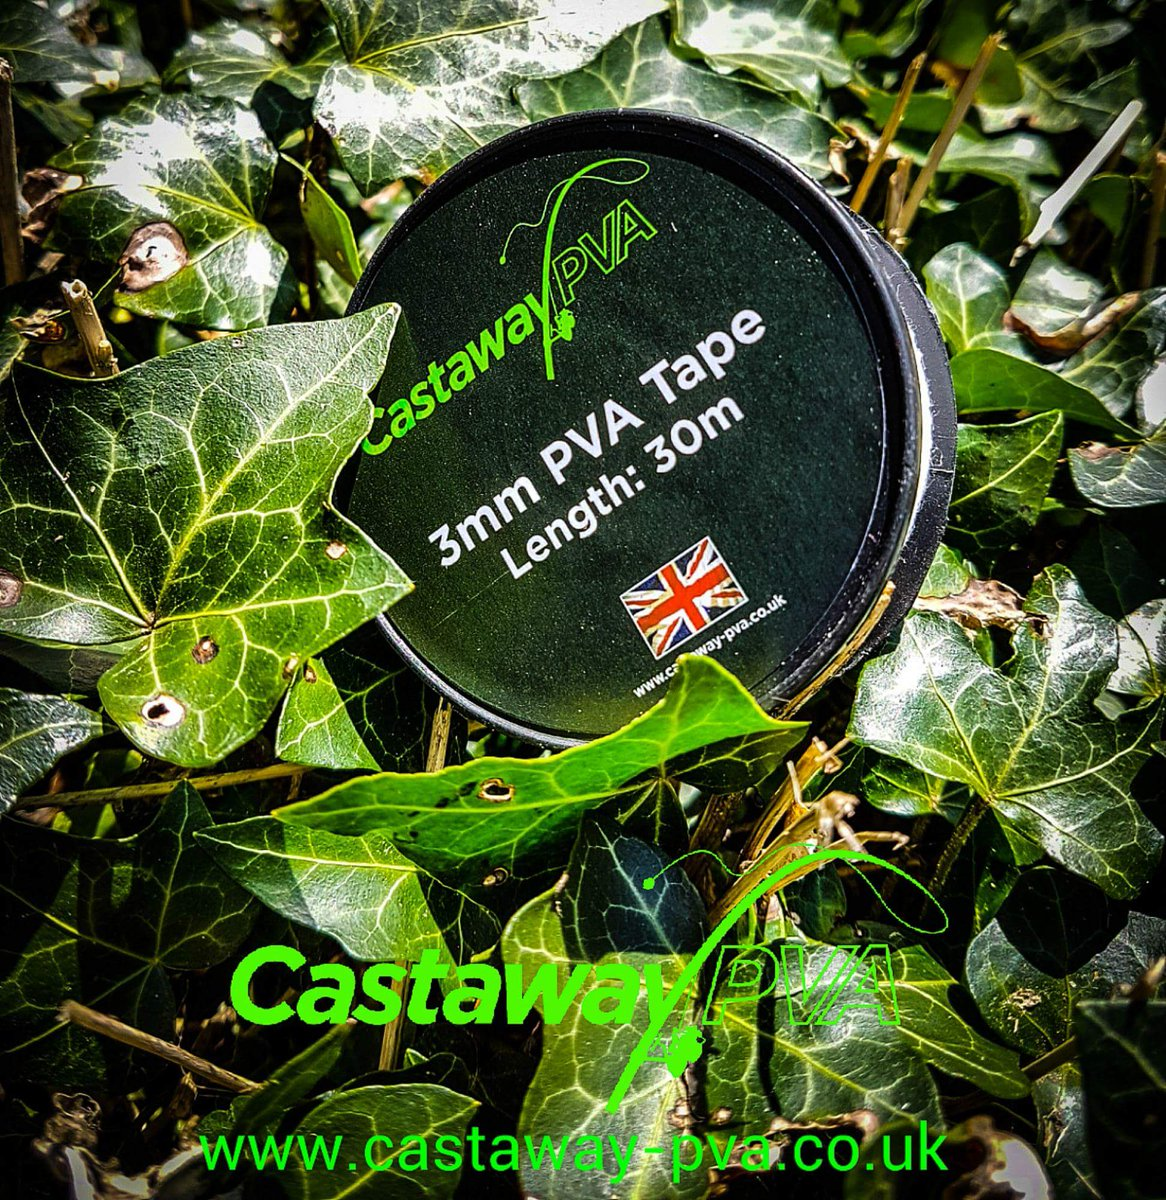 @Castaway_PVA Finest quality PVA products to suit every need. #Carpfishing #matthewkingsfordcarpfish